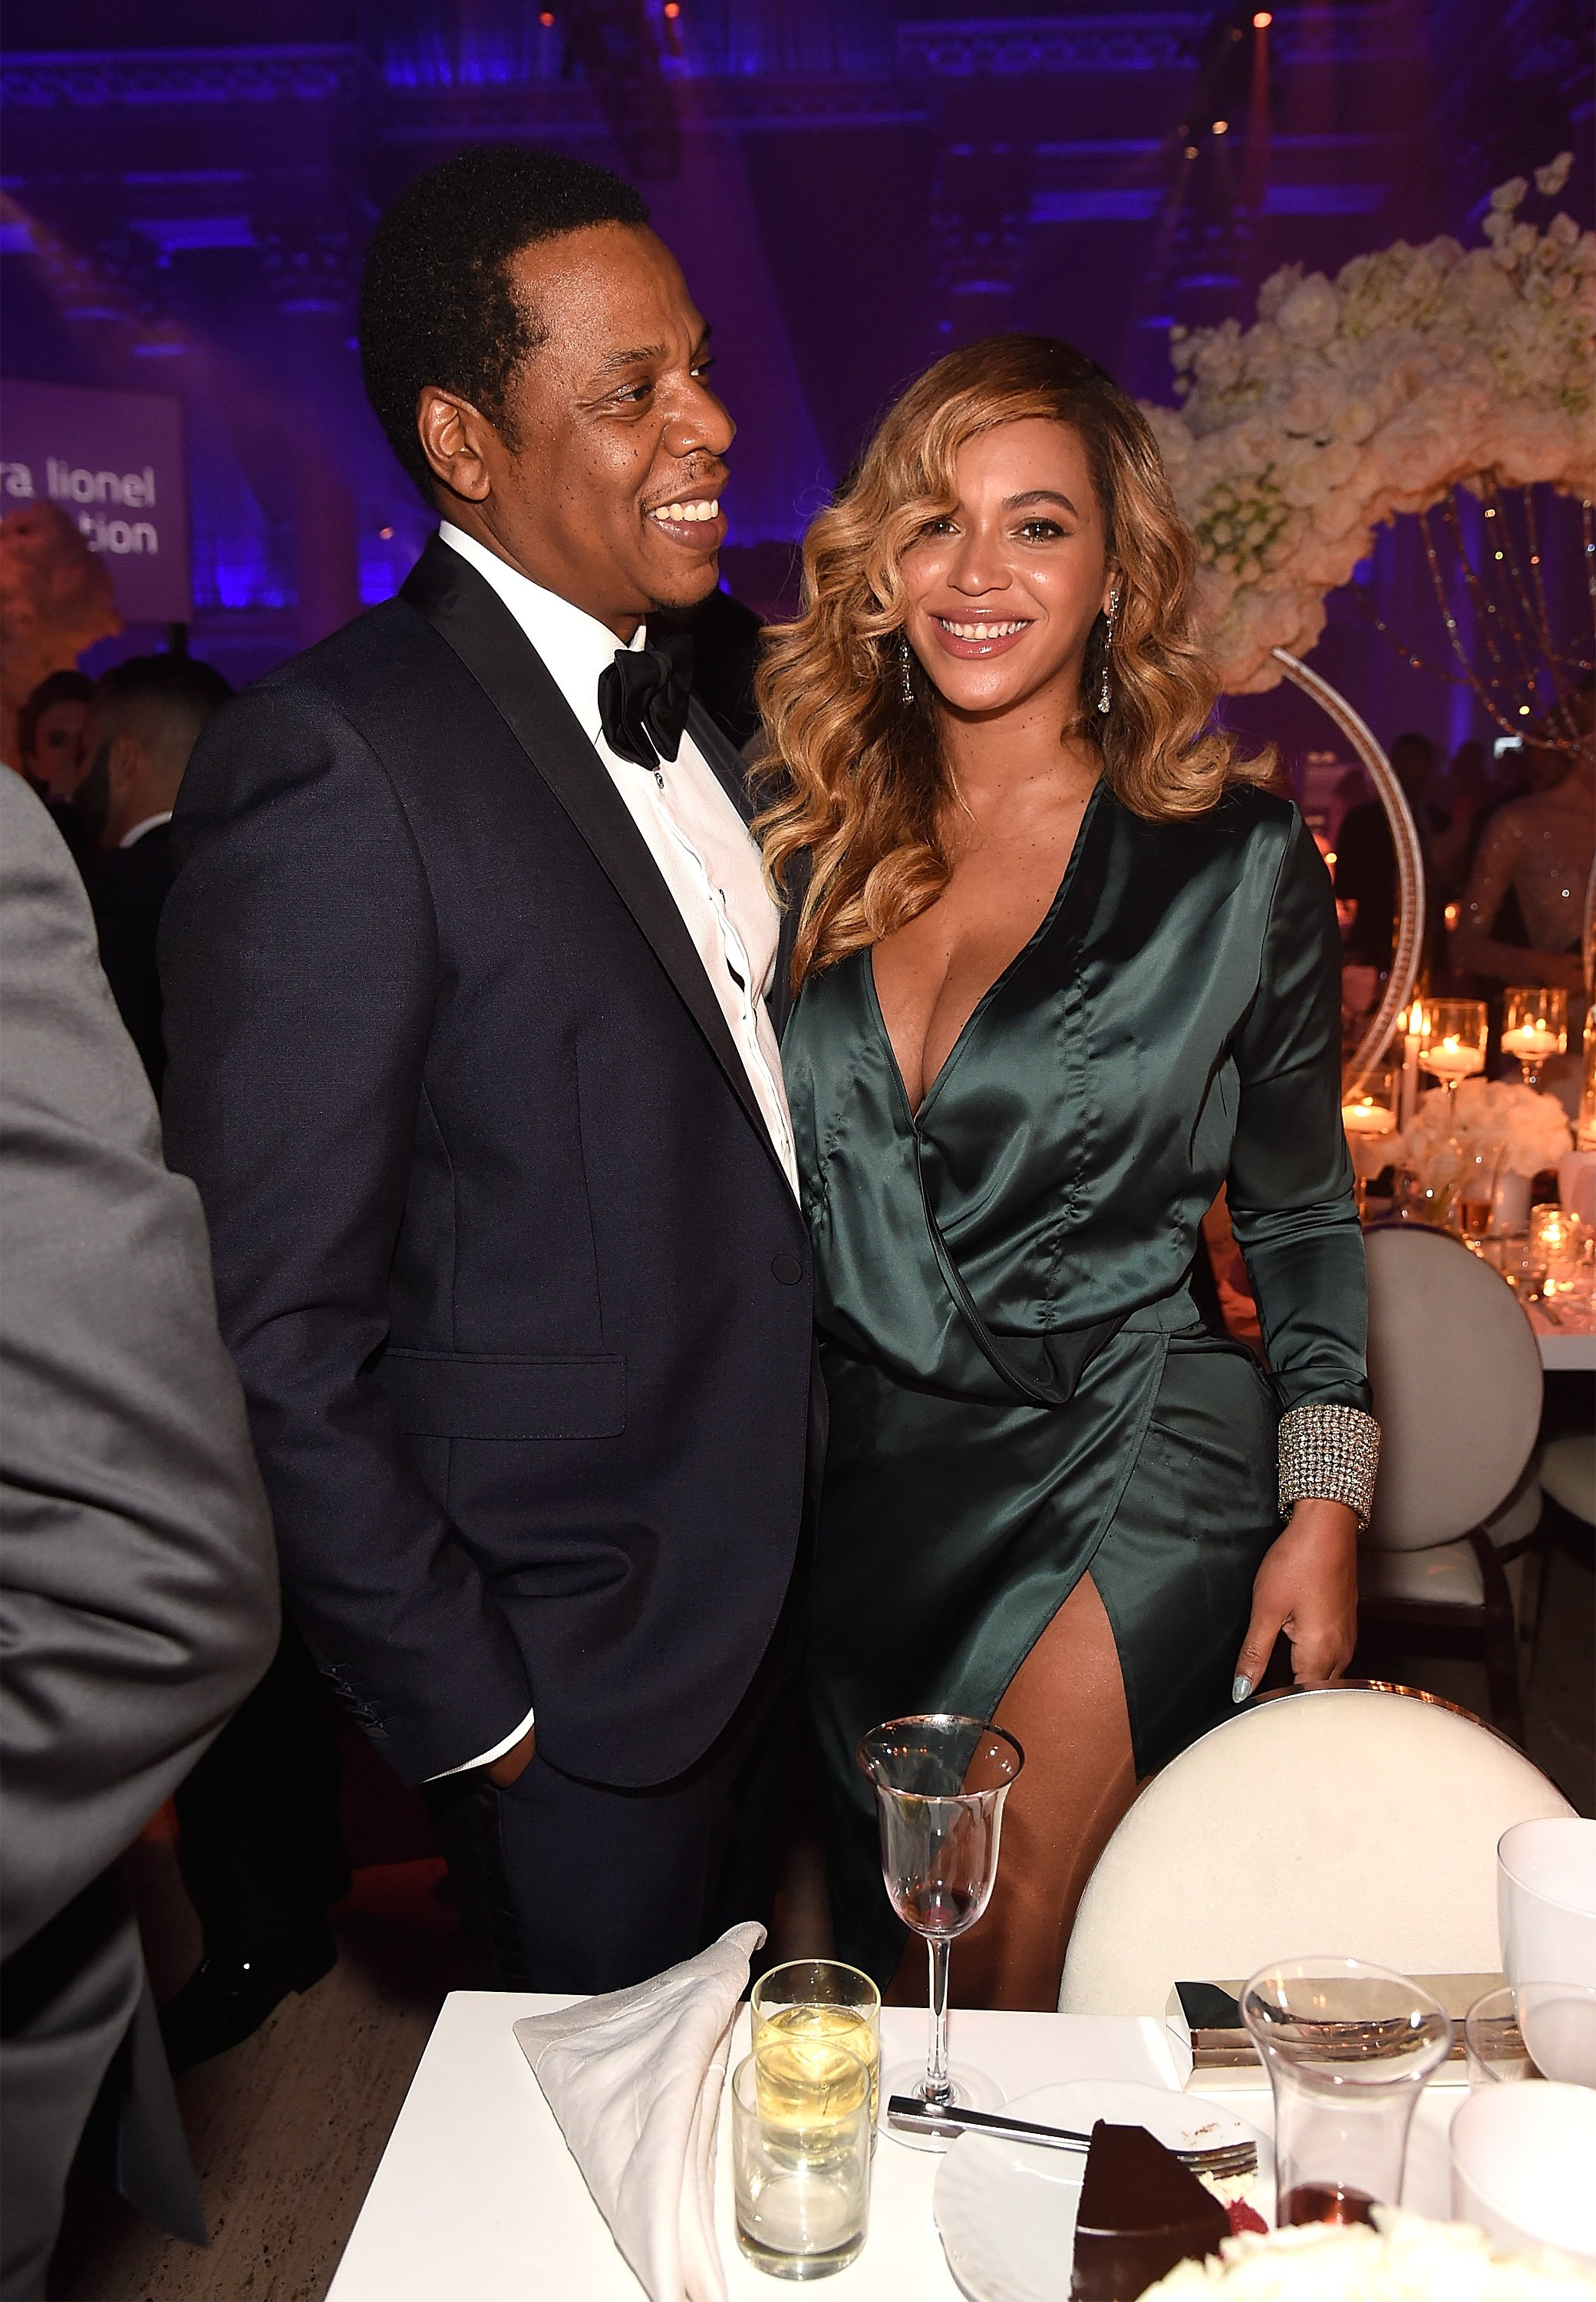 Jay-Z and Beyonce attend Rihanna's 3rd Annual Diamond Ball. | Photo: GettyImages